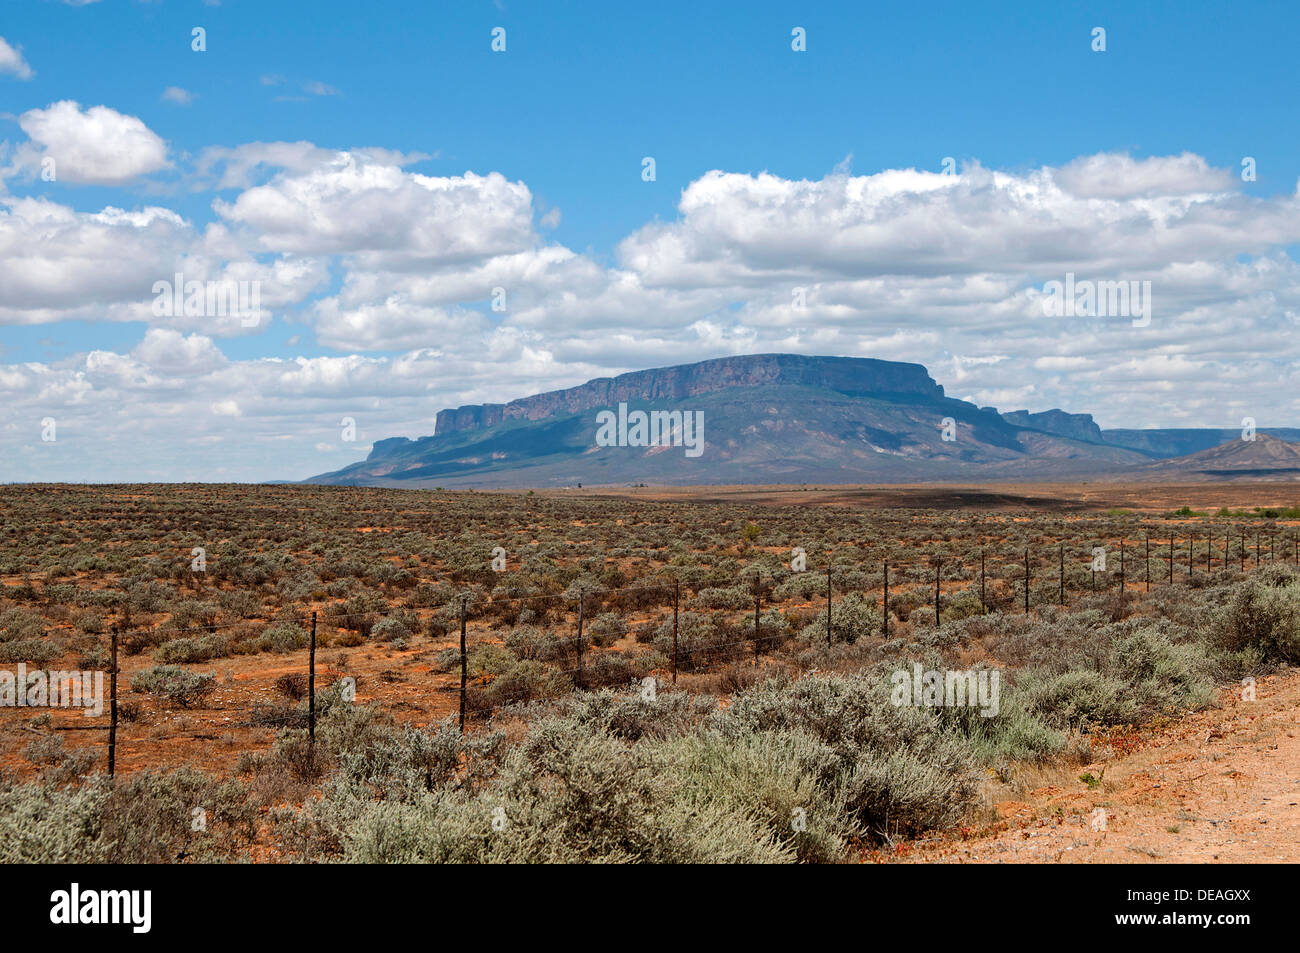 Succulents in the Knersvlakte Plateau in front of the Matzikama Mountains, Knersvlakte, near Vanrhynsdorp, Knersvlakte - Stock Image